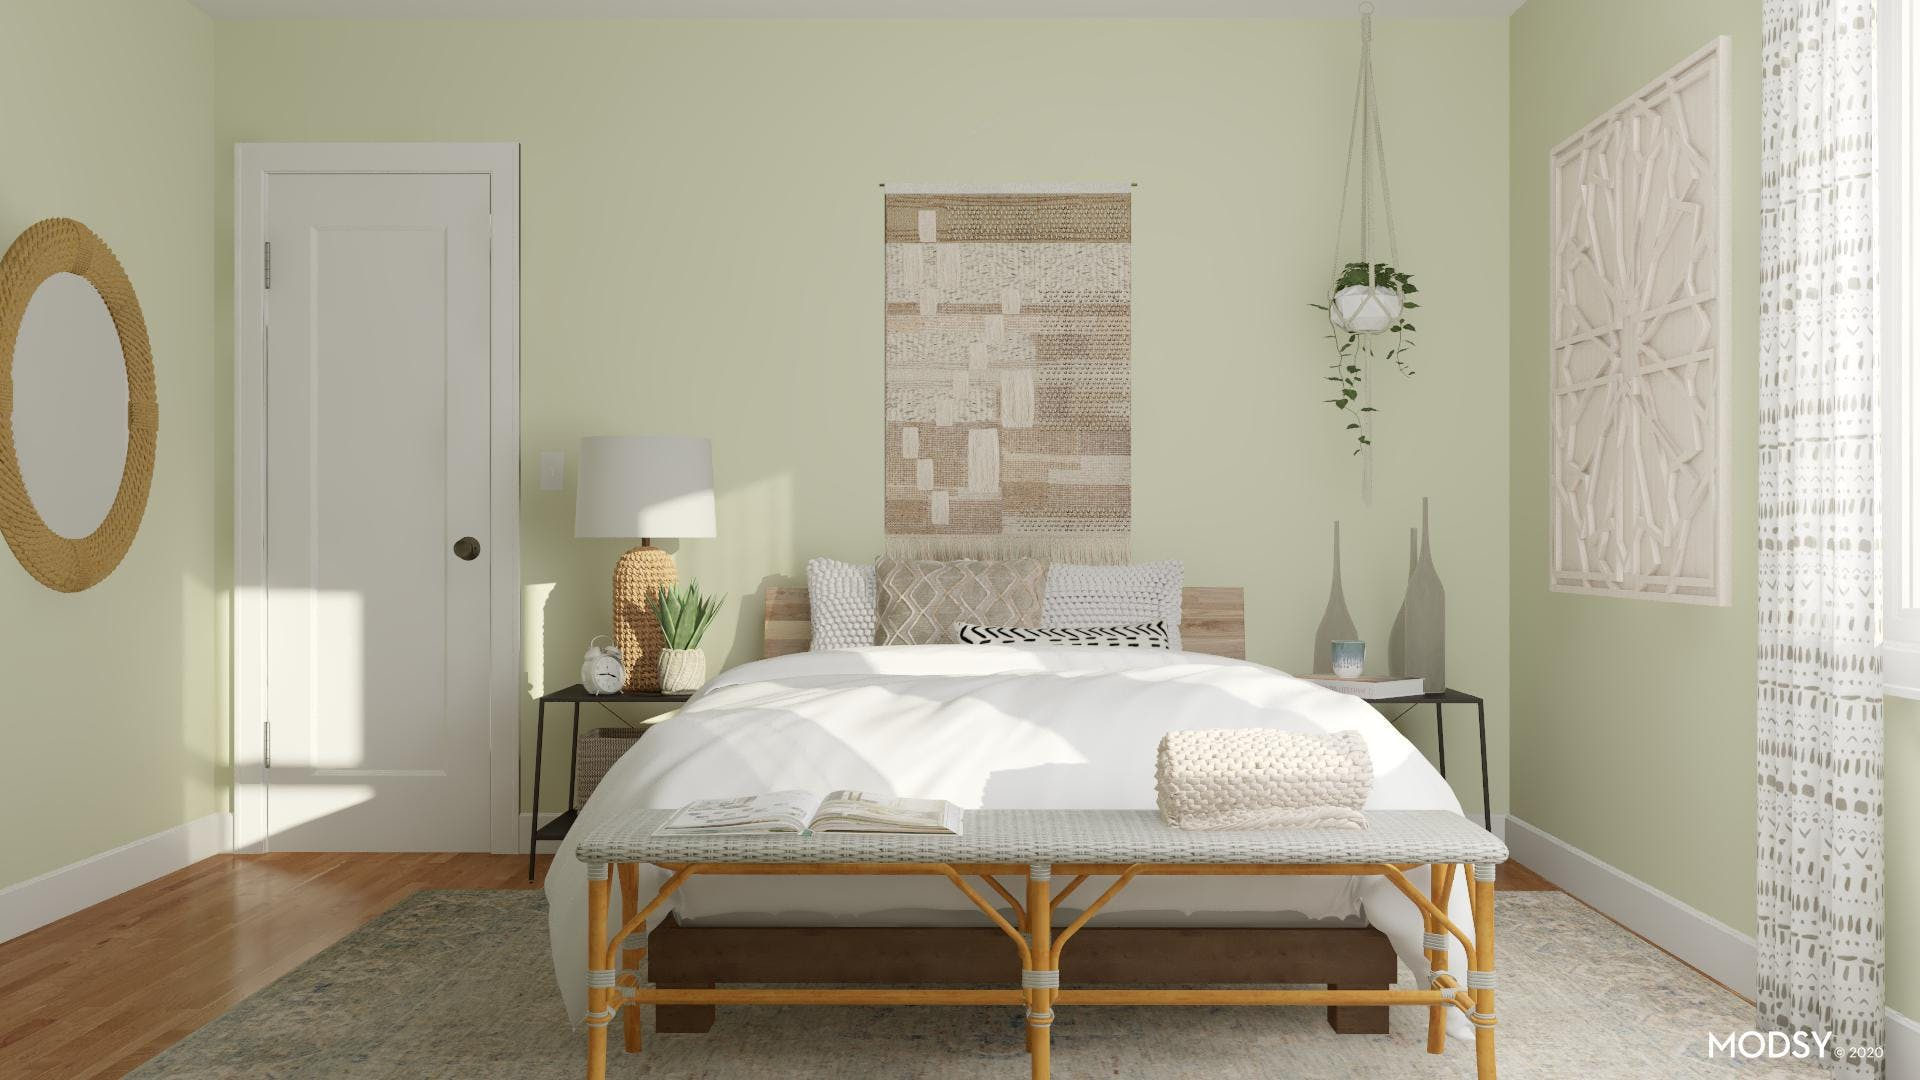 A Neutral, Inviting Atmosphere